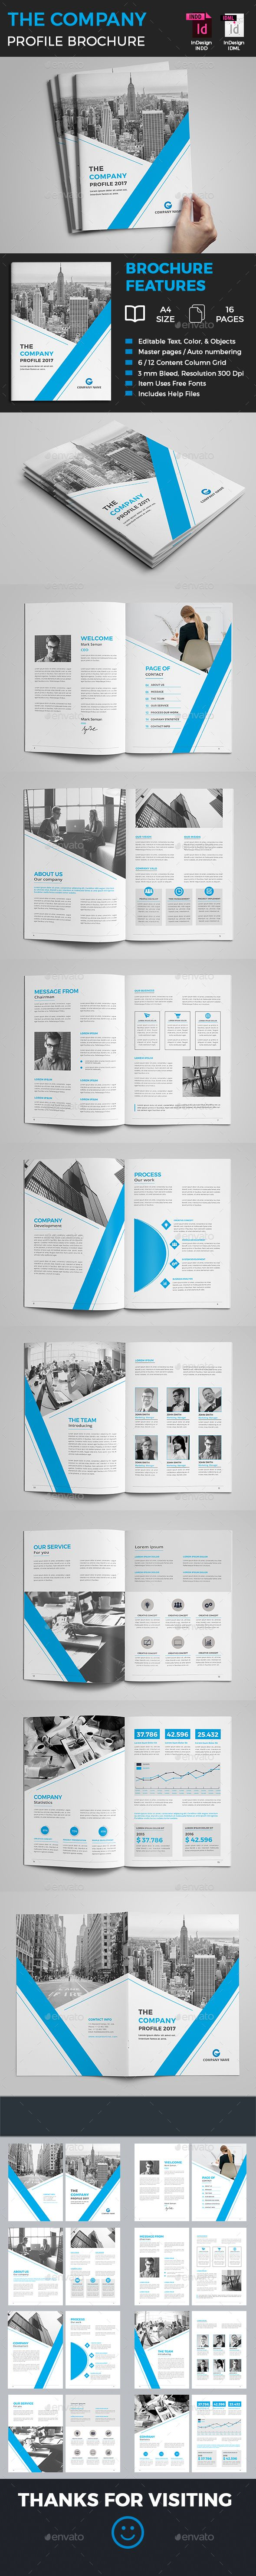 Company Profile Brochure — InDesign INDD #indesign brochure #annual report • Available here → https://graphicriver.net/item/company-profile-brochure/20452839?ref=pxcr